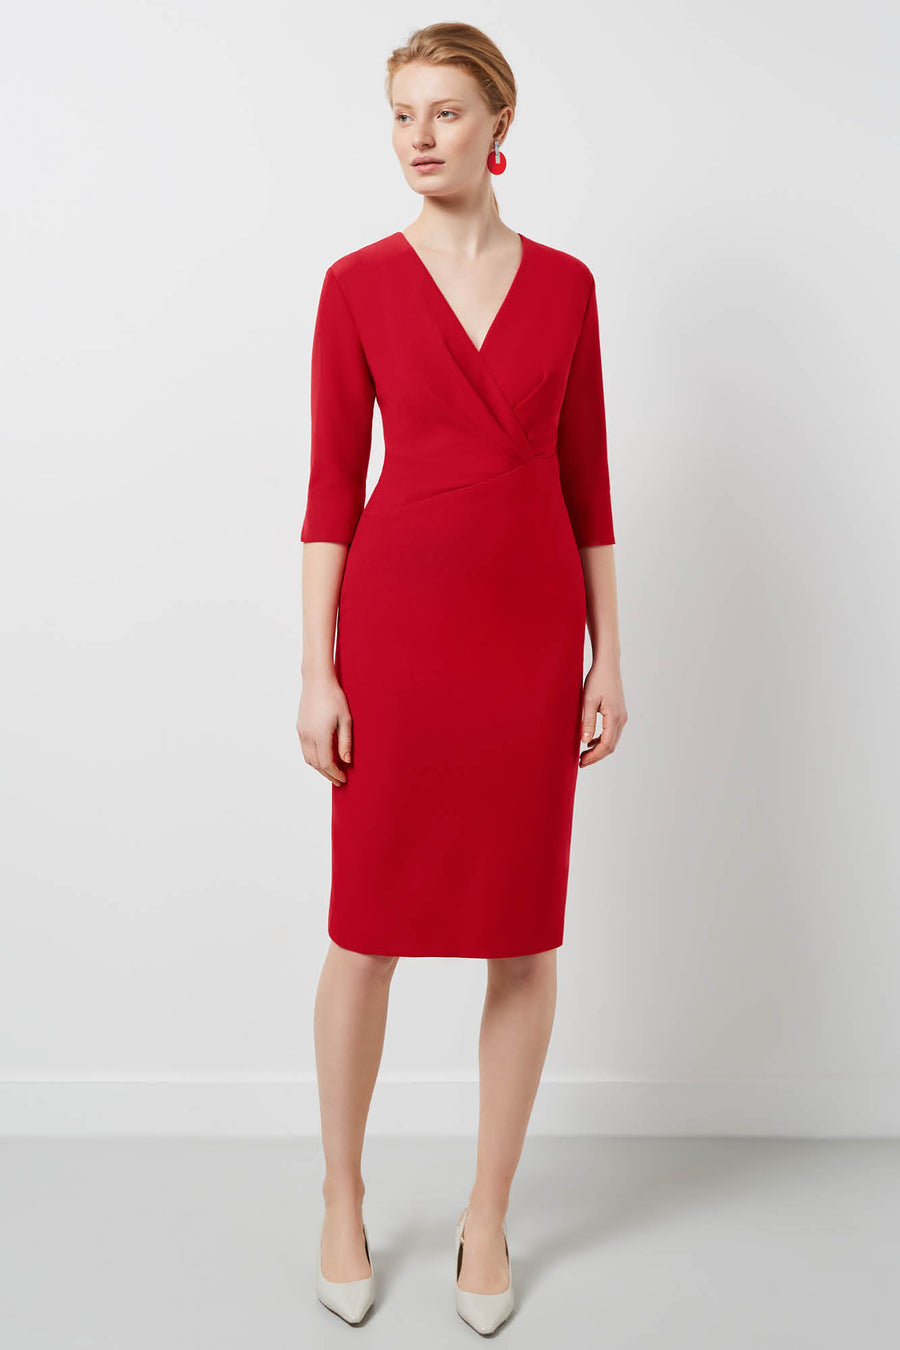 Wigmore Red Dress